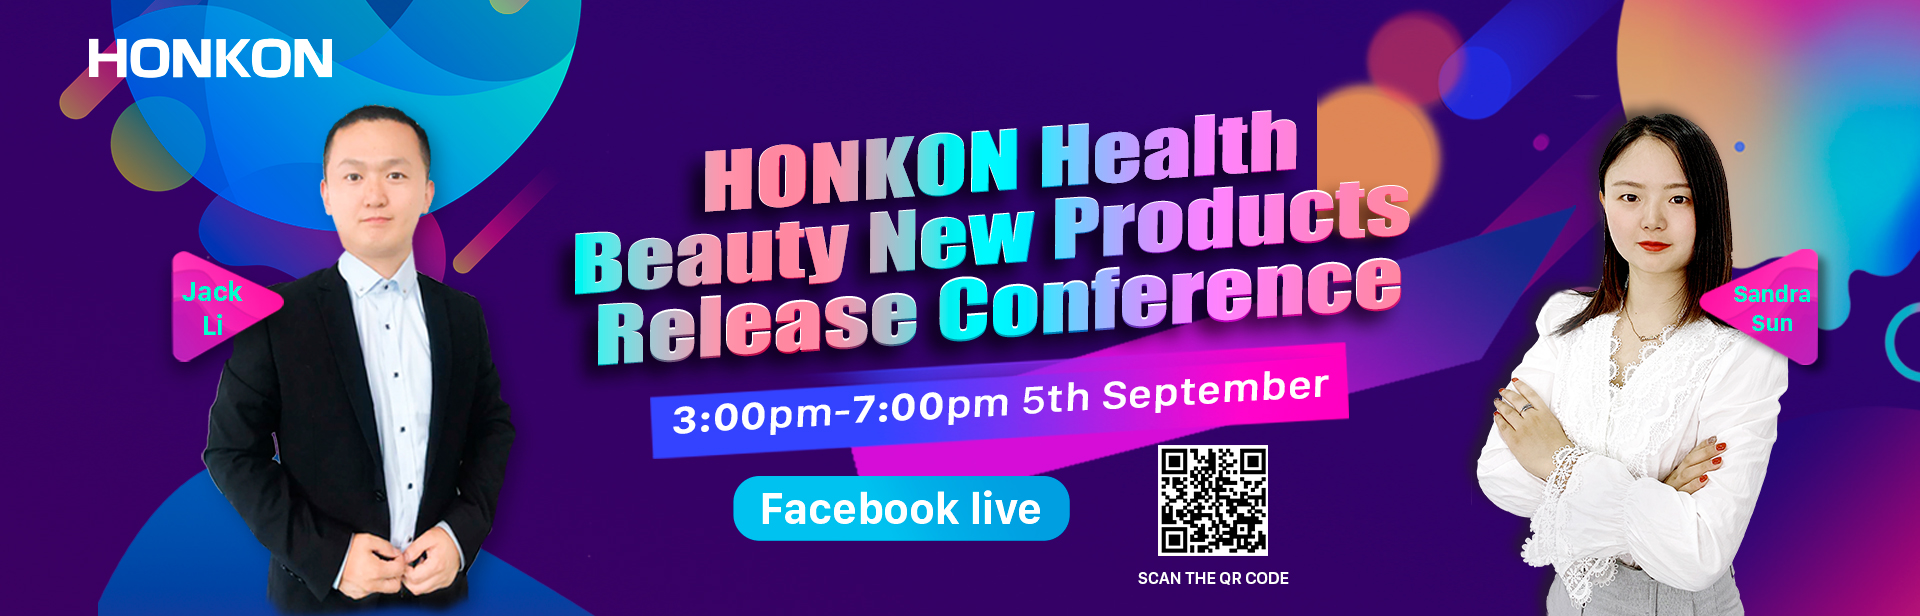 HONKON Health & Beauty New Products Release Conference4